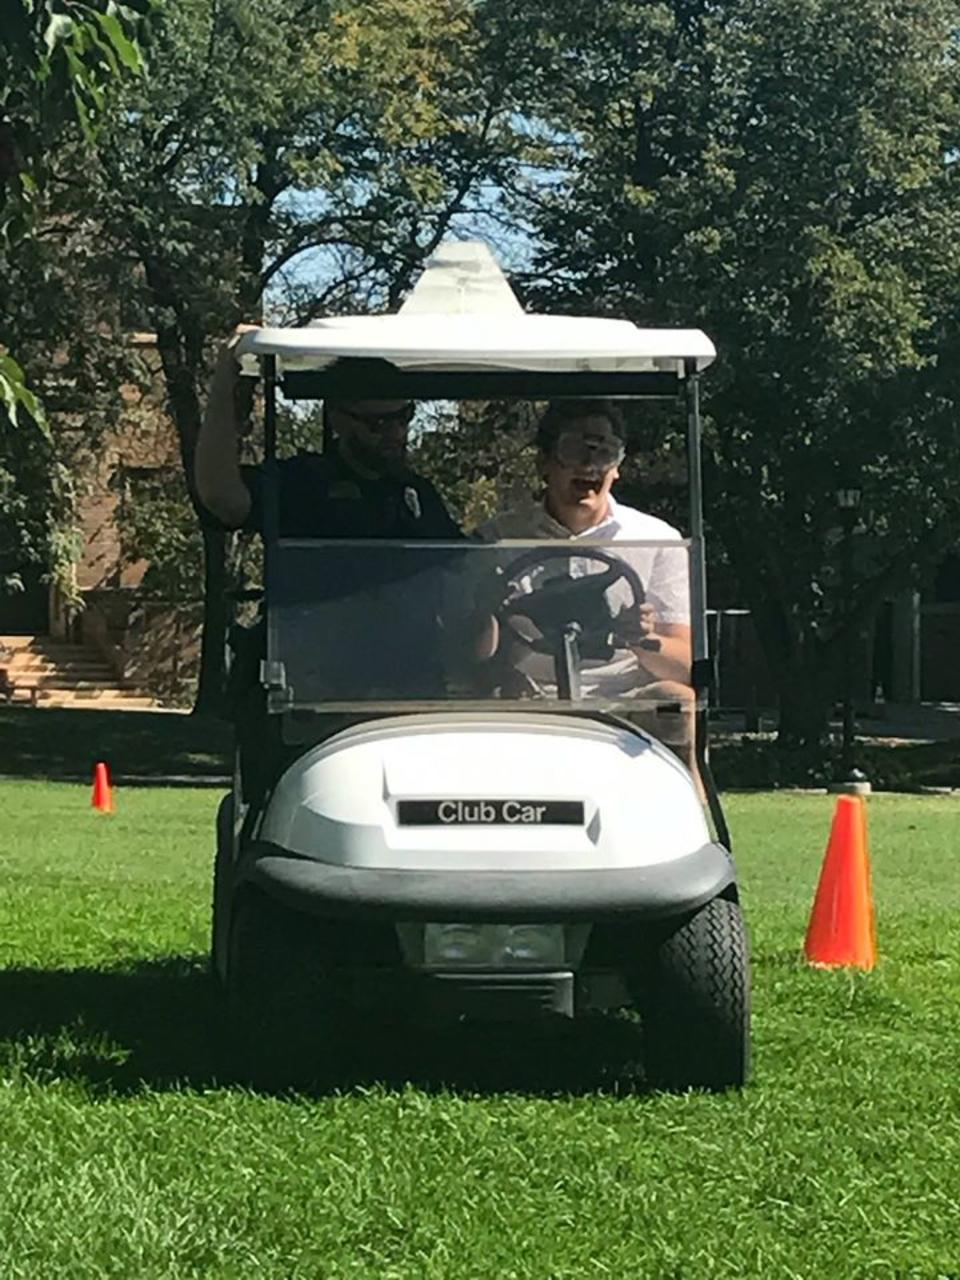 Fatal Vision driver in golf cart